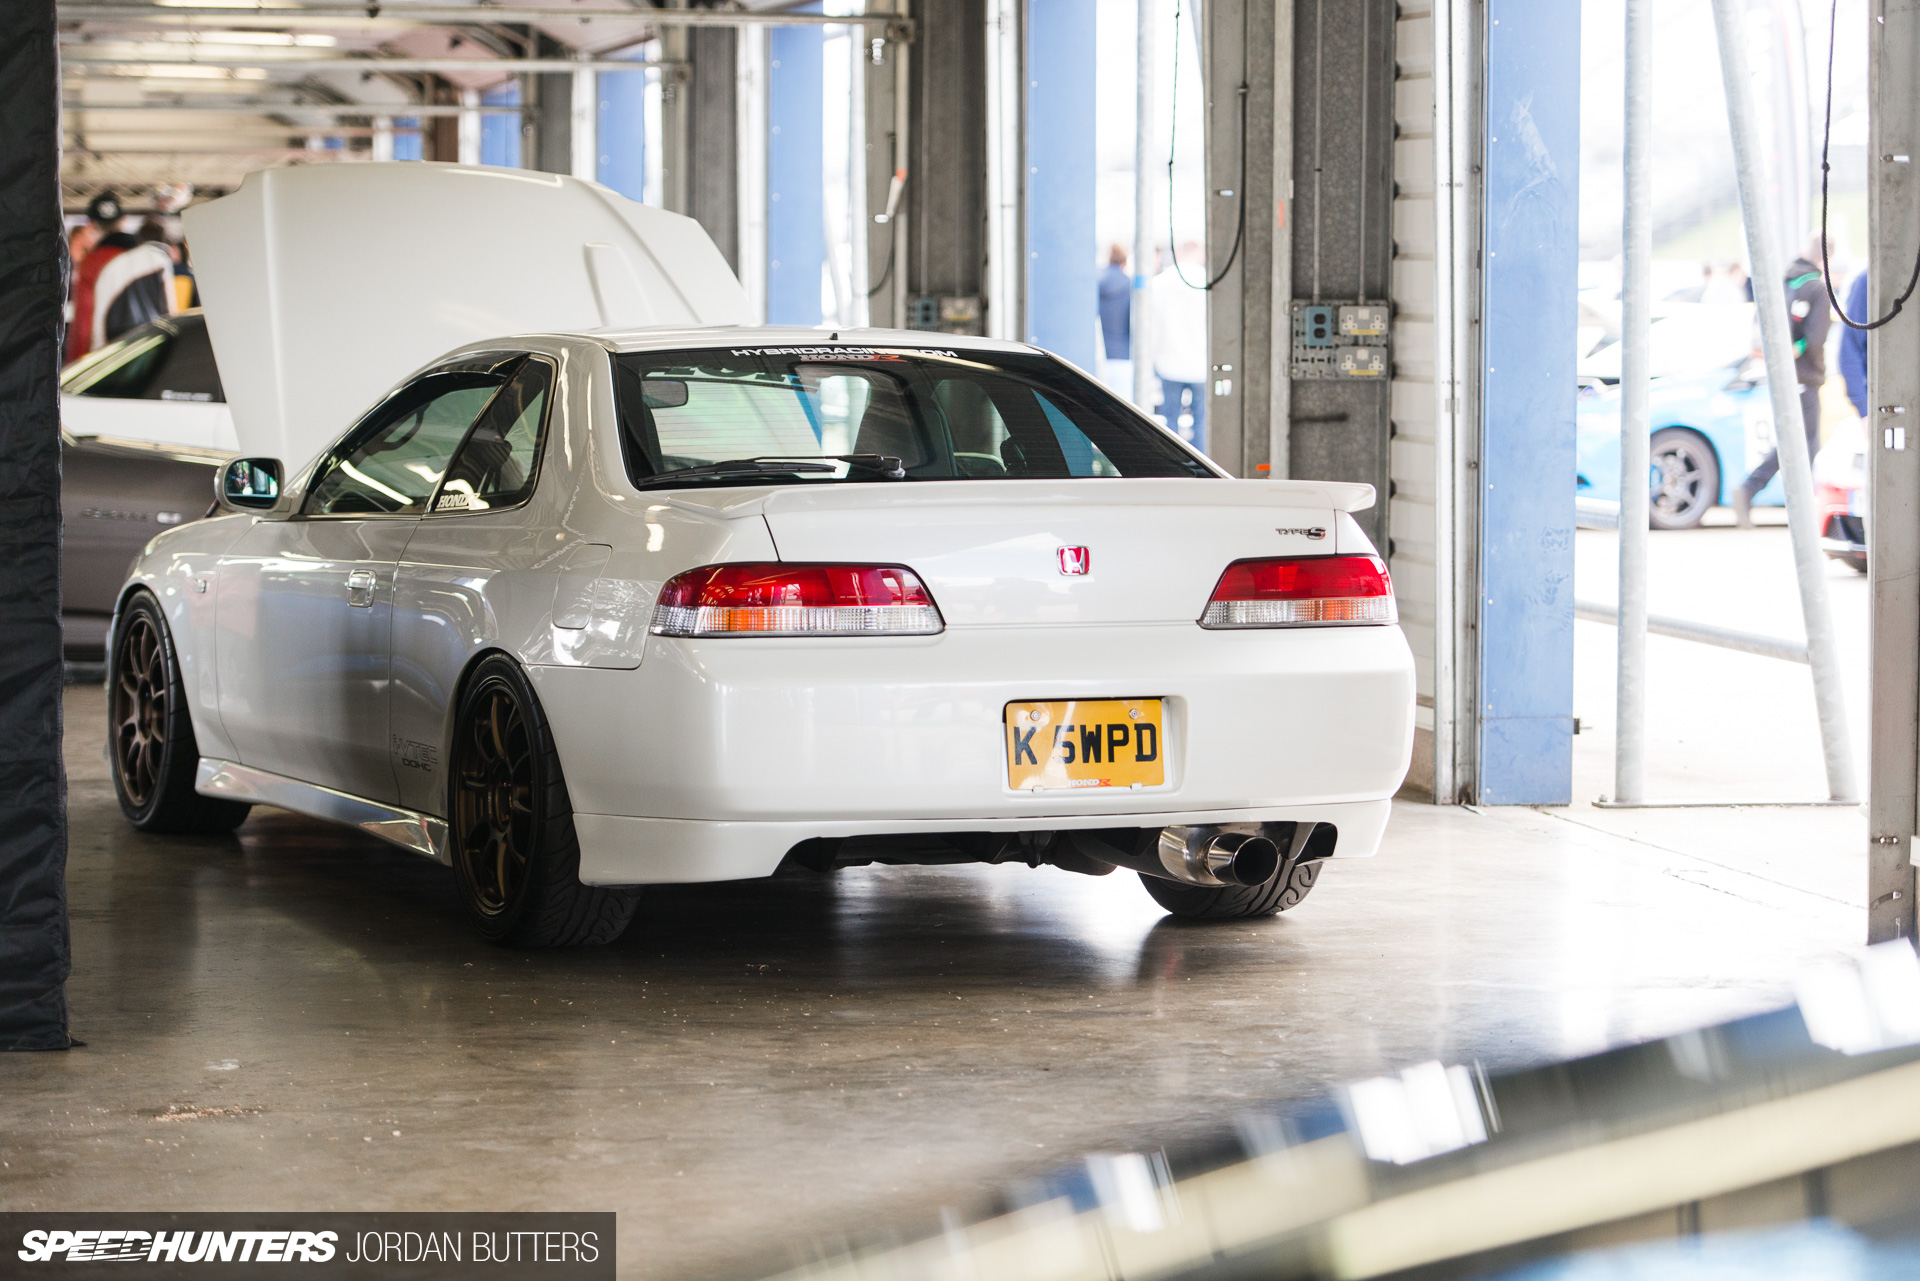 The Missing Prelude Type R Speedhunters